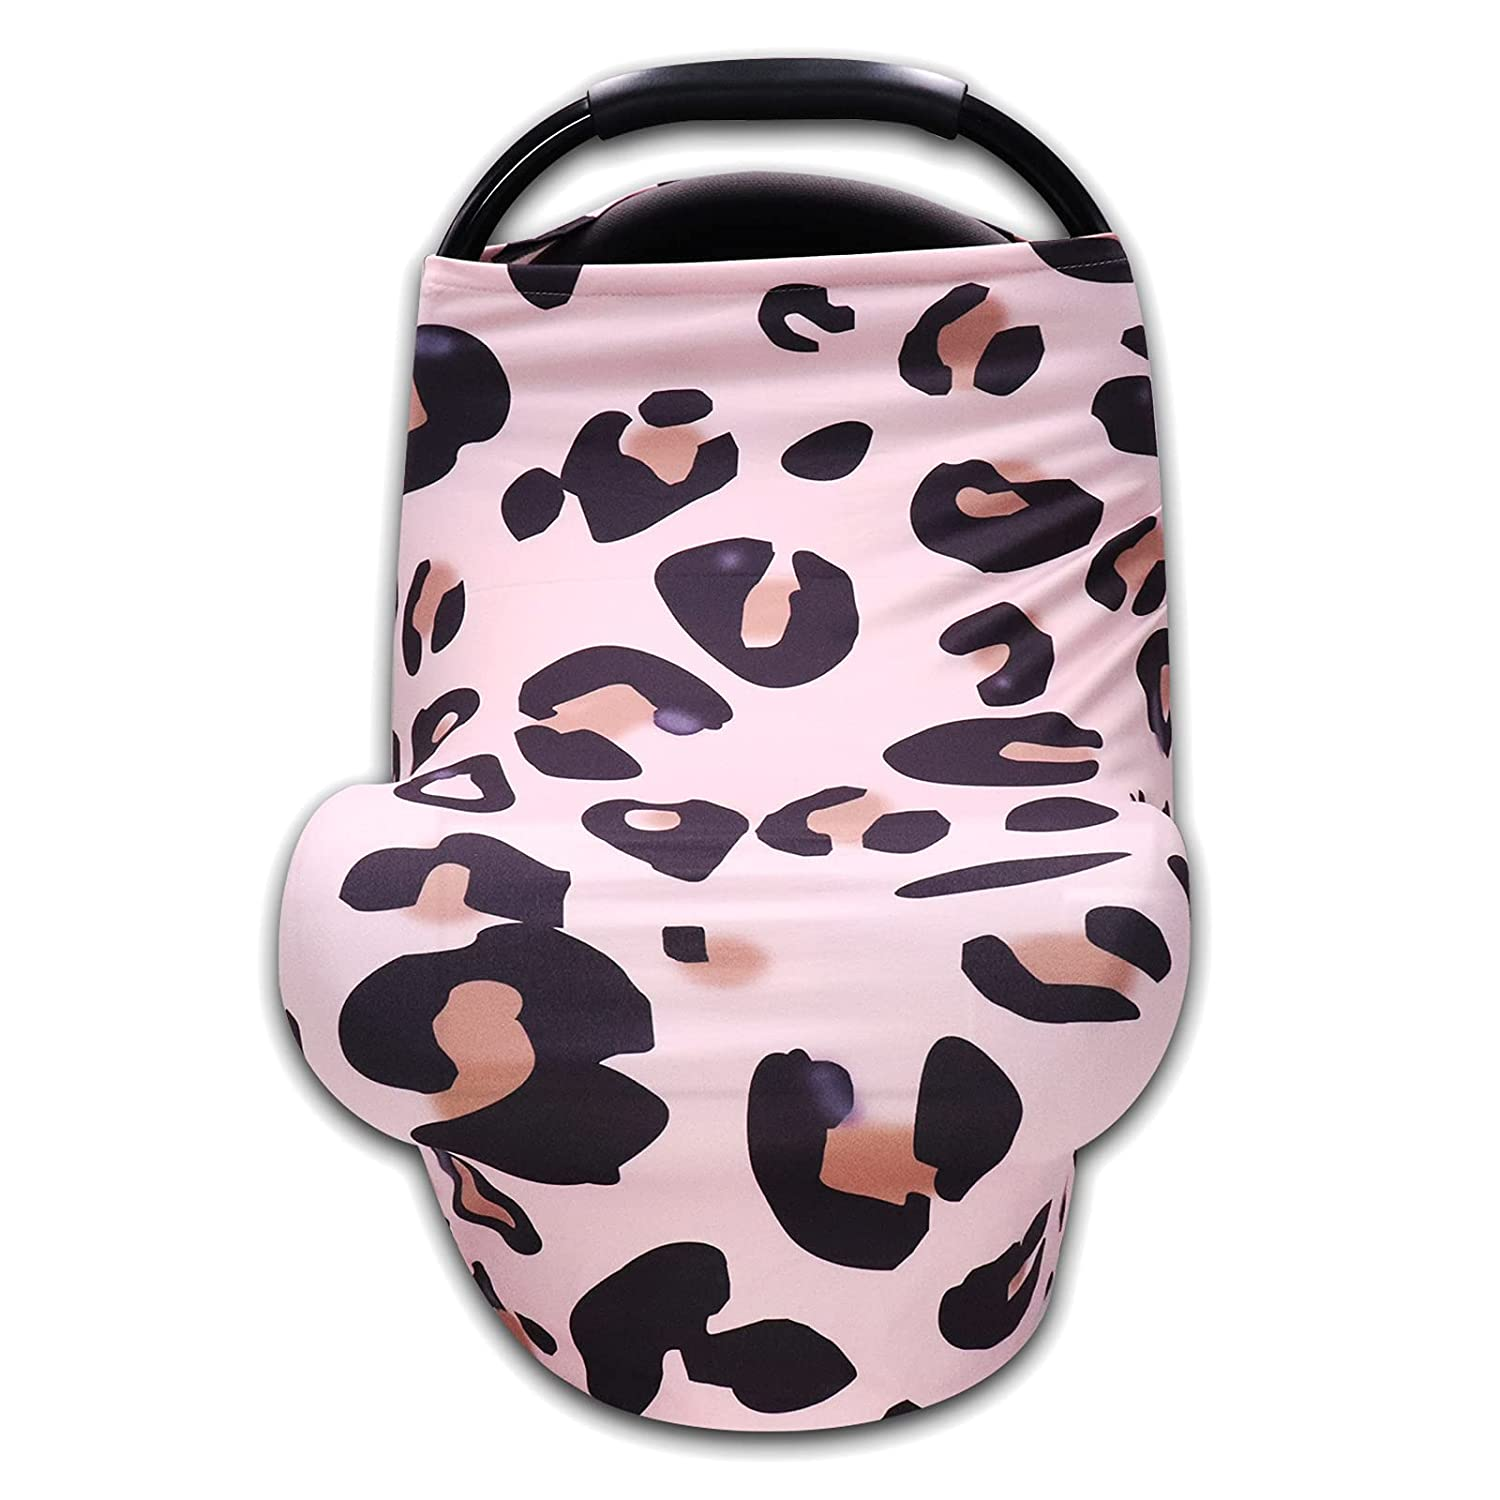 Hooyax Baby Car Seat Cover for Boys Girls Infant and C Milwaukee 4 years warranty Mall